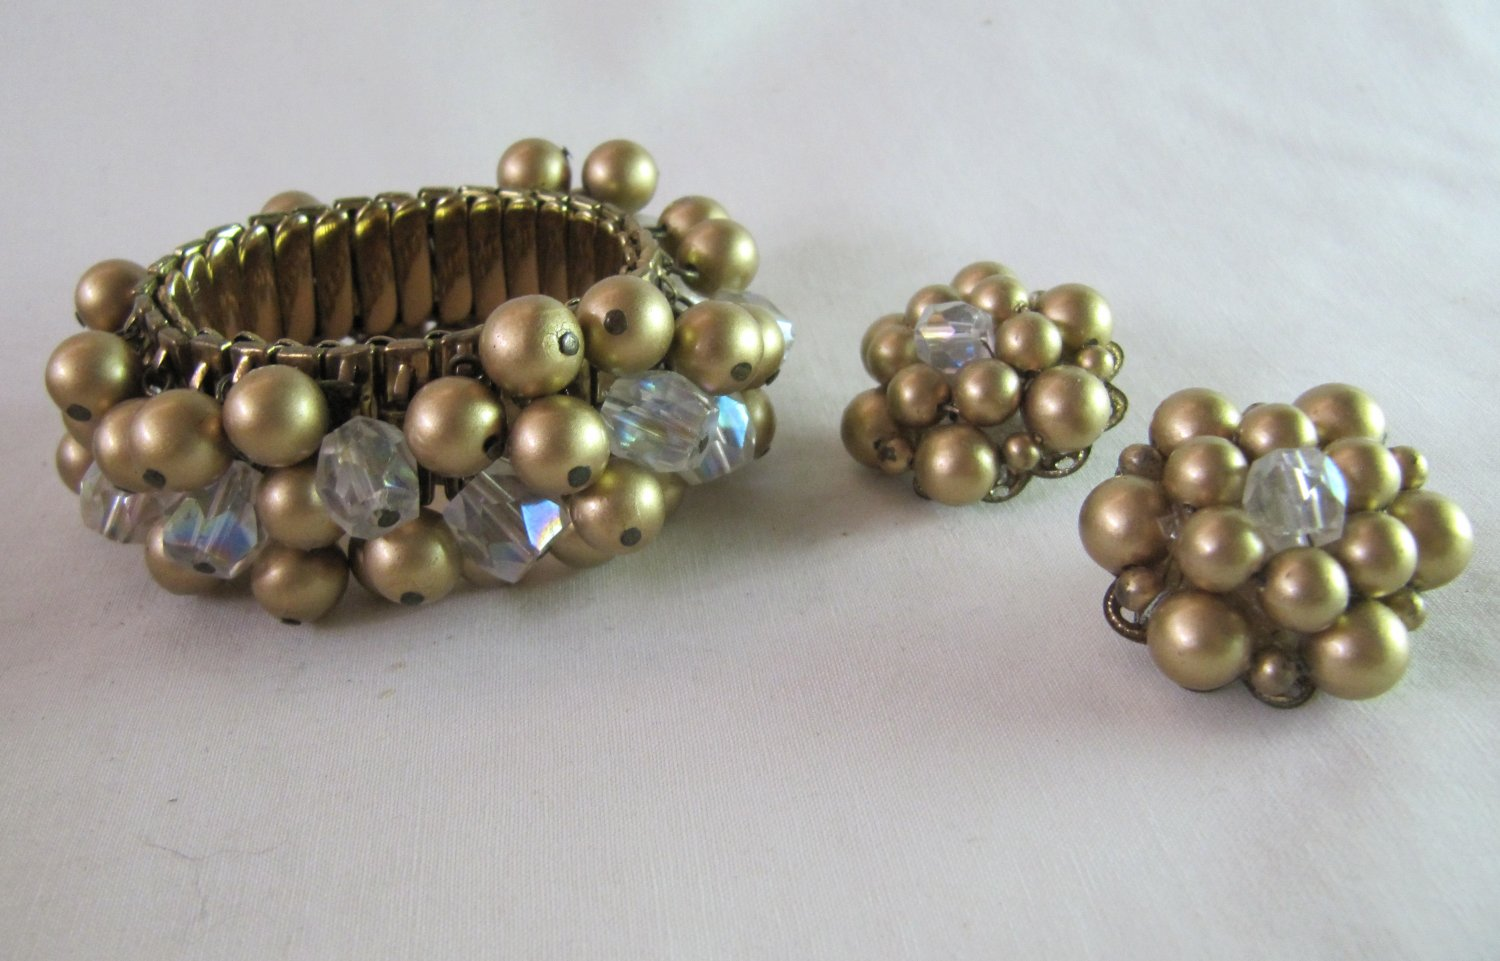 Vintage Bracelet & Clip Earrings Set  Faux Gold Pearls Clear Lucite Beads Stretch Goldtone Band